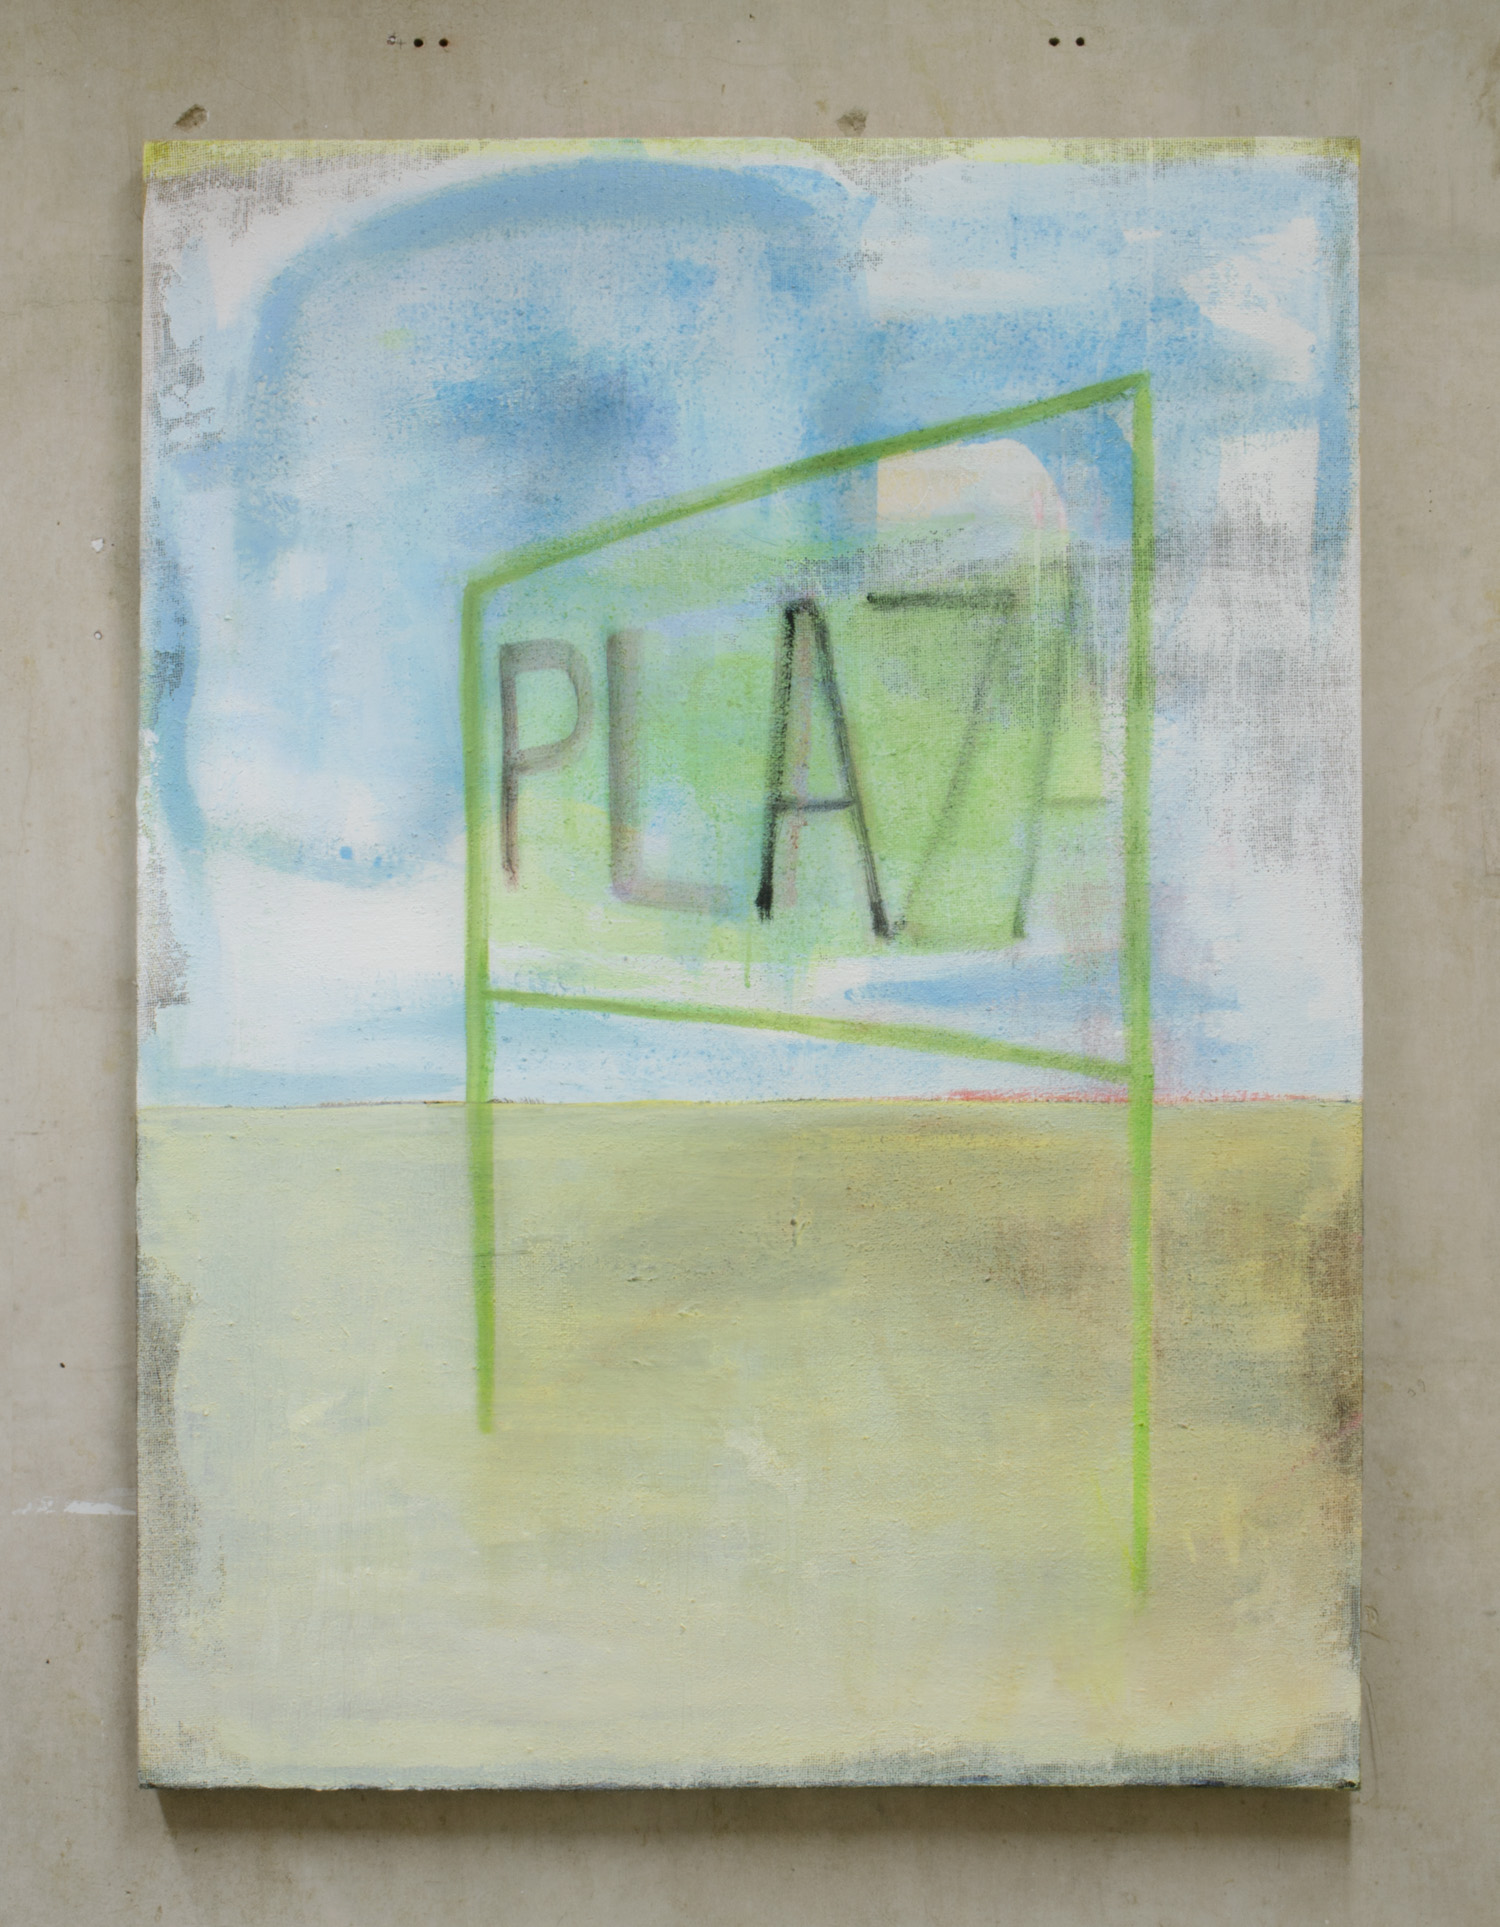 Plaza,  2015, 152 x 112 cm, acrylic, oil, emulsion and plaster on hessian.